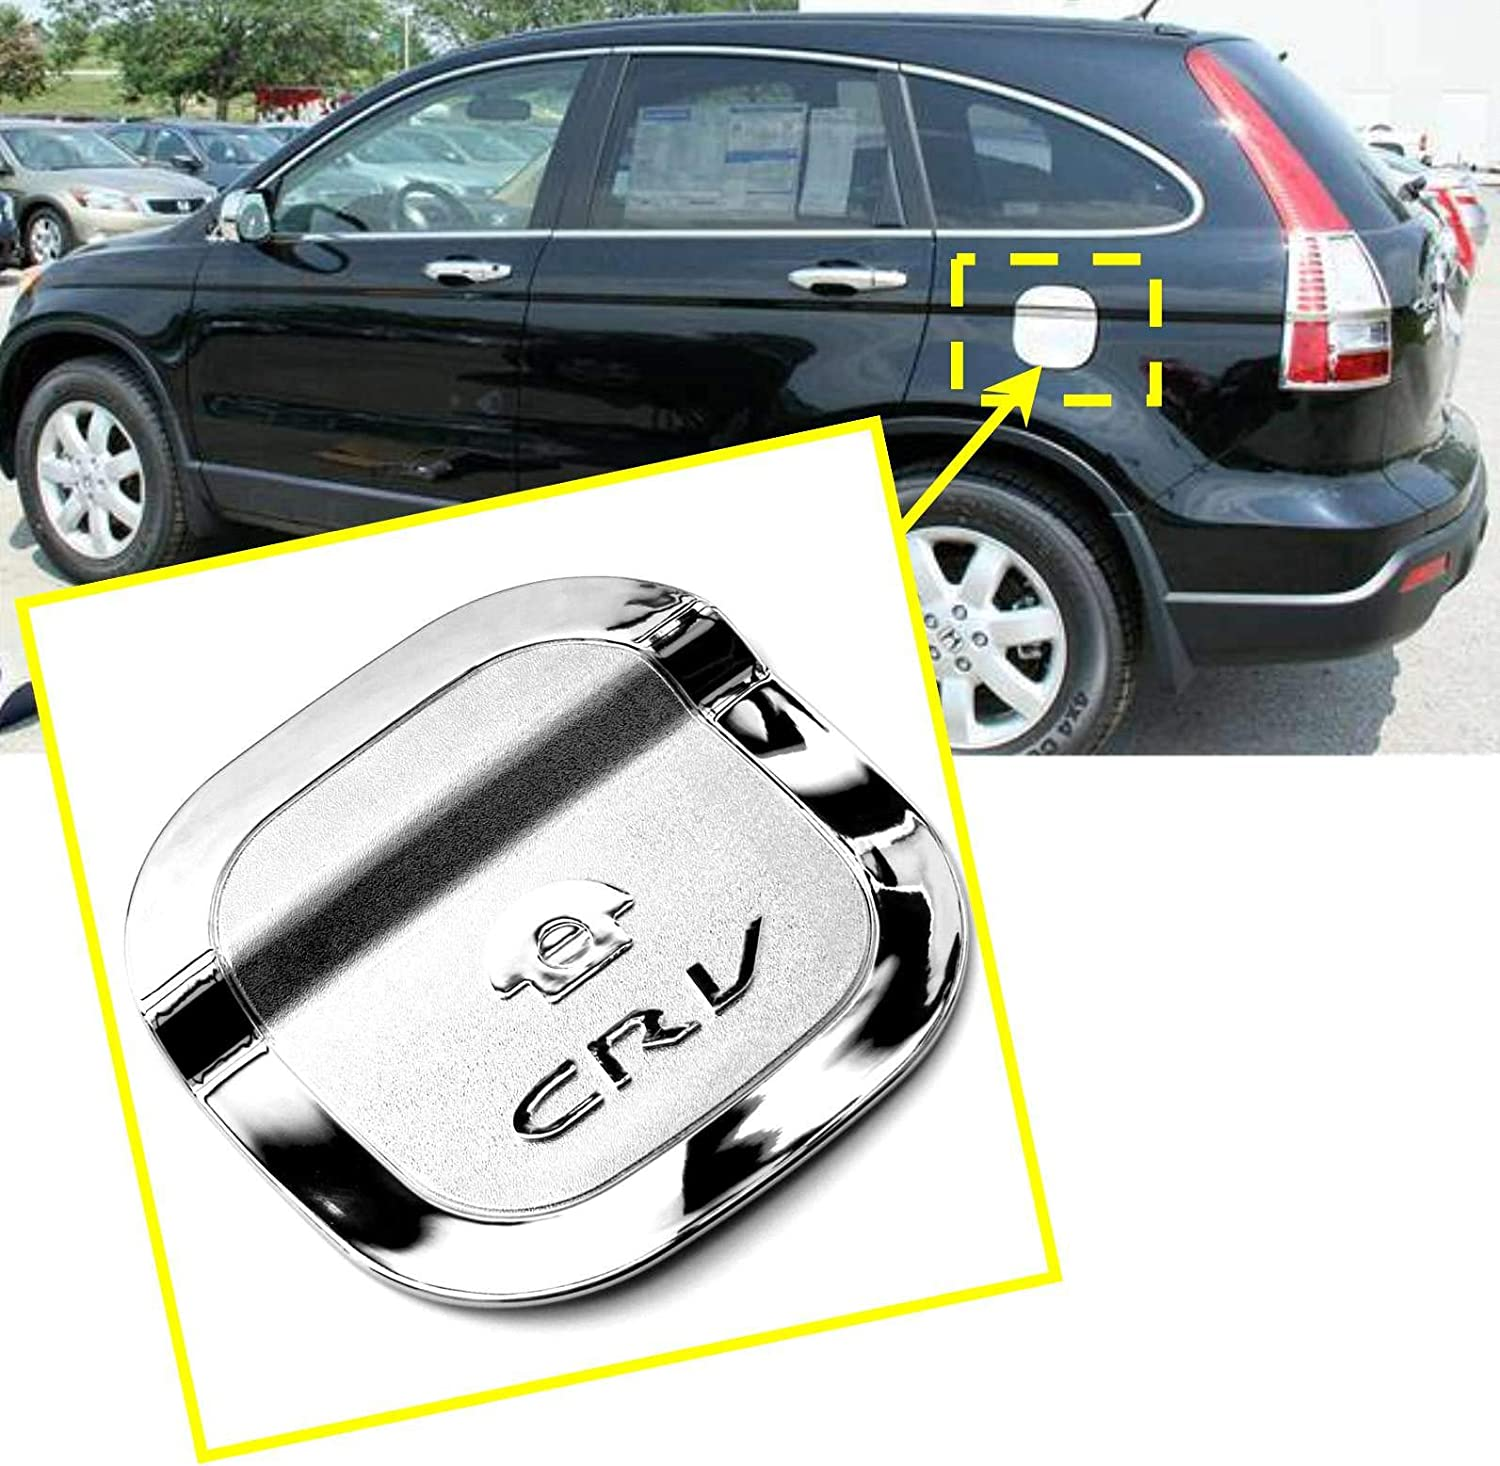 1 Piece For Honda Crv 2007 2008 2009 2010 2011 Chrome Fuel Gas Oil Tank Trim Cover Trims Guard 1186 Re1/–Re5, Re7 TOTUMY